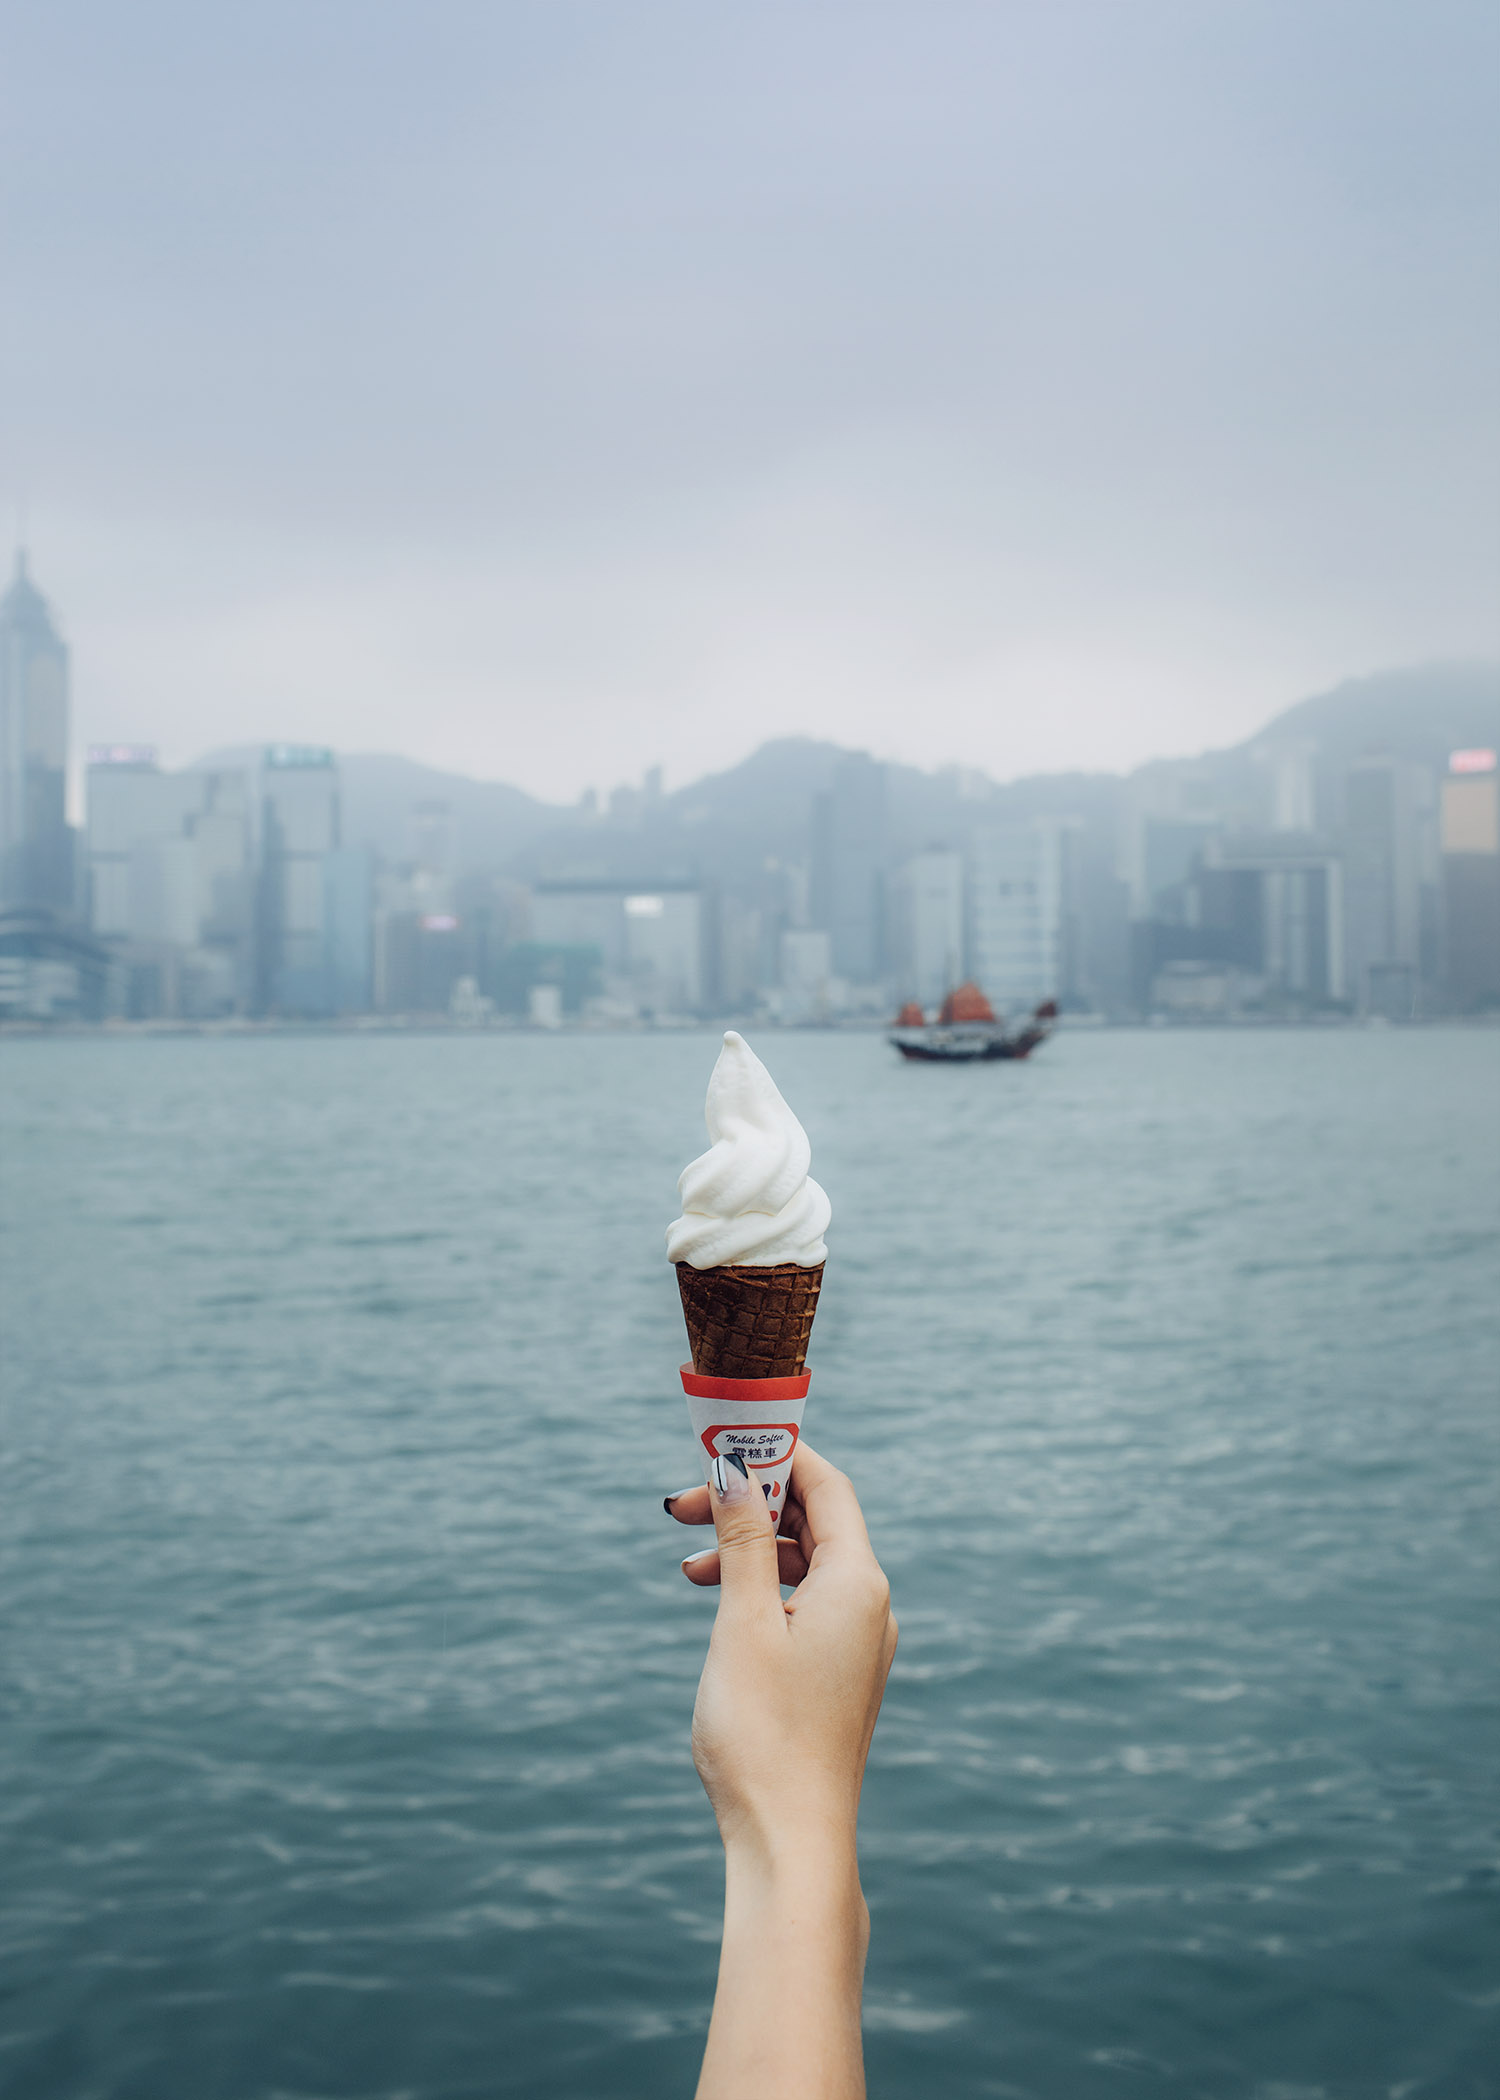 Street style fashion blogger influencer Jenny Tsang of Tsangtastic enjoying ice cream in Hong Kong. Ice Cream with a view.